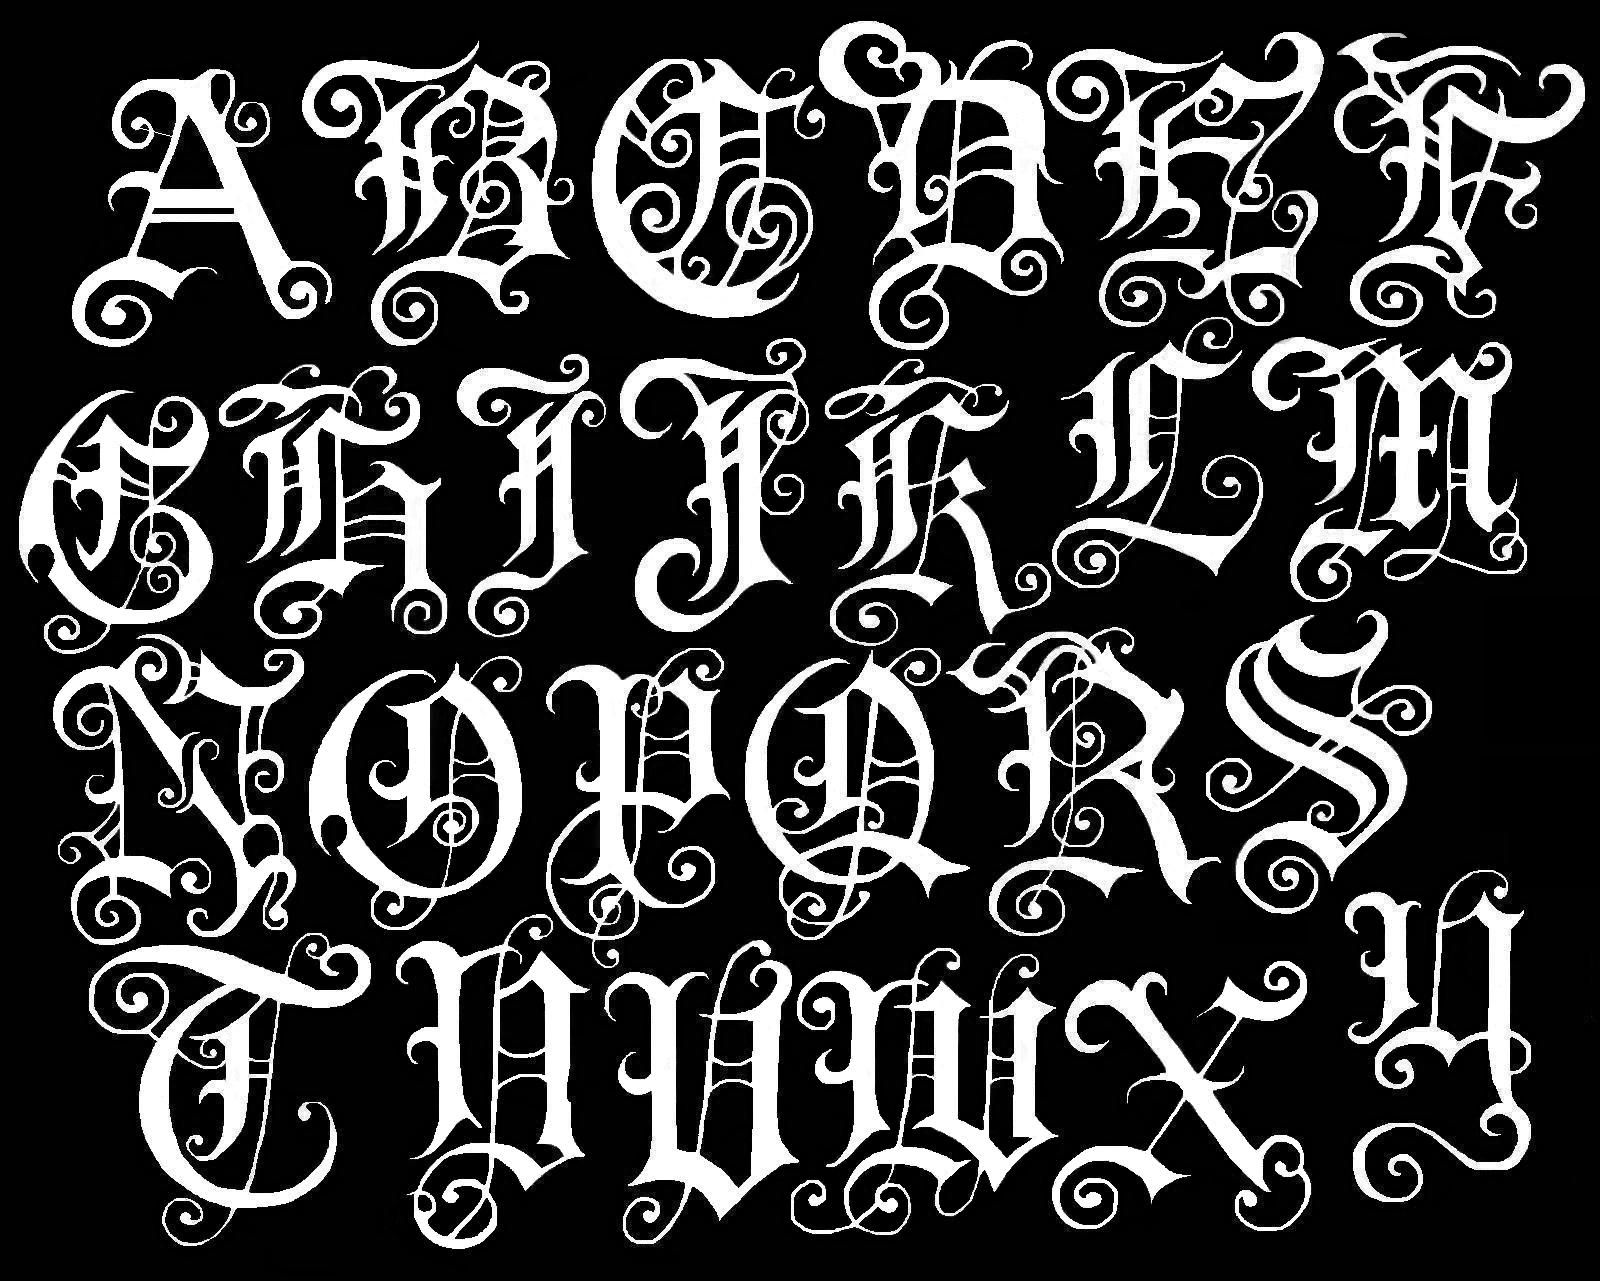 Gothic letters graffiti old english fonts letter alphabet